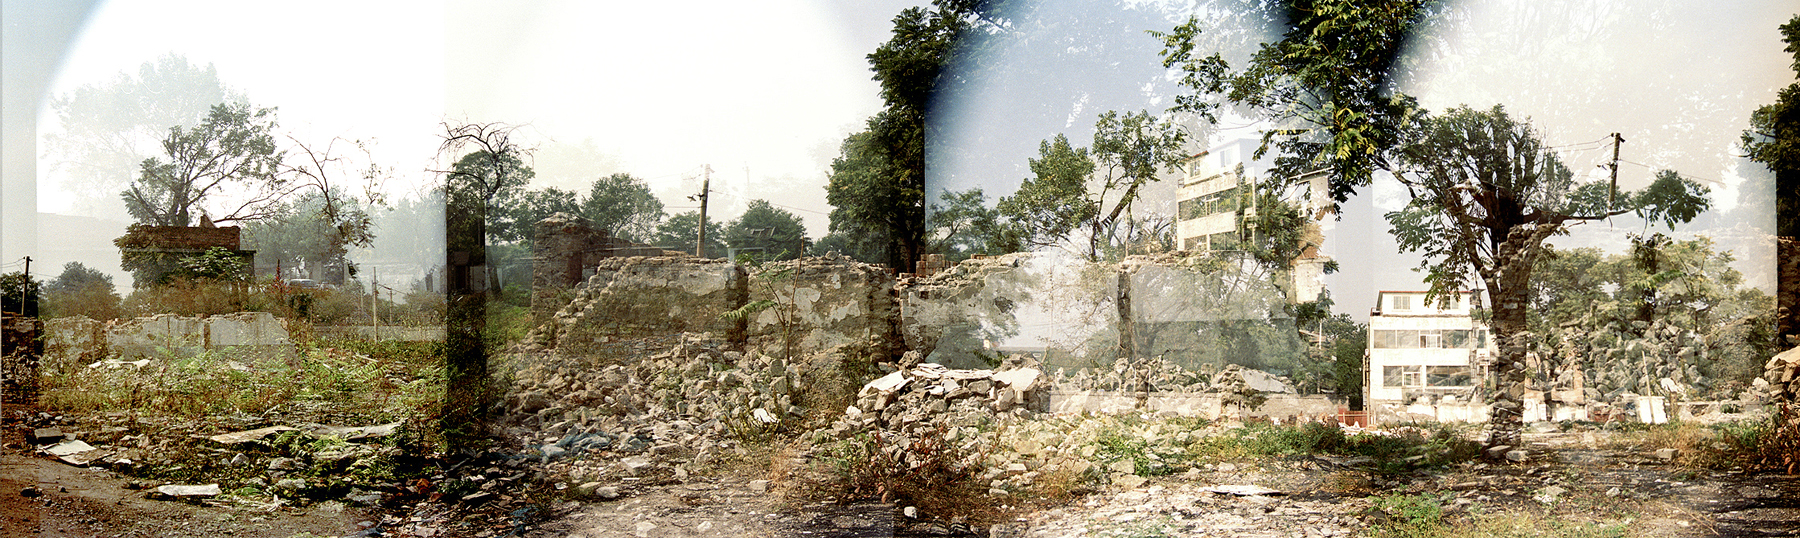 Images of struggling trees and a destroyed brick house have been stitched together.